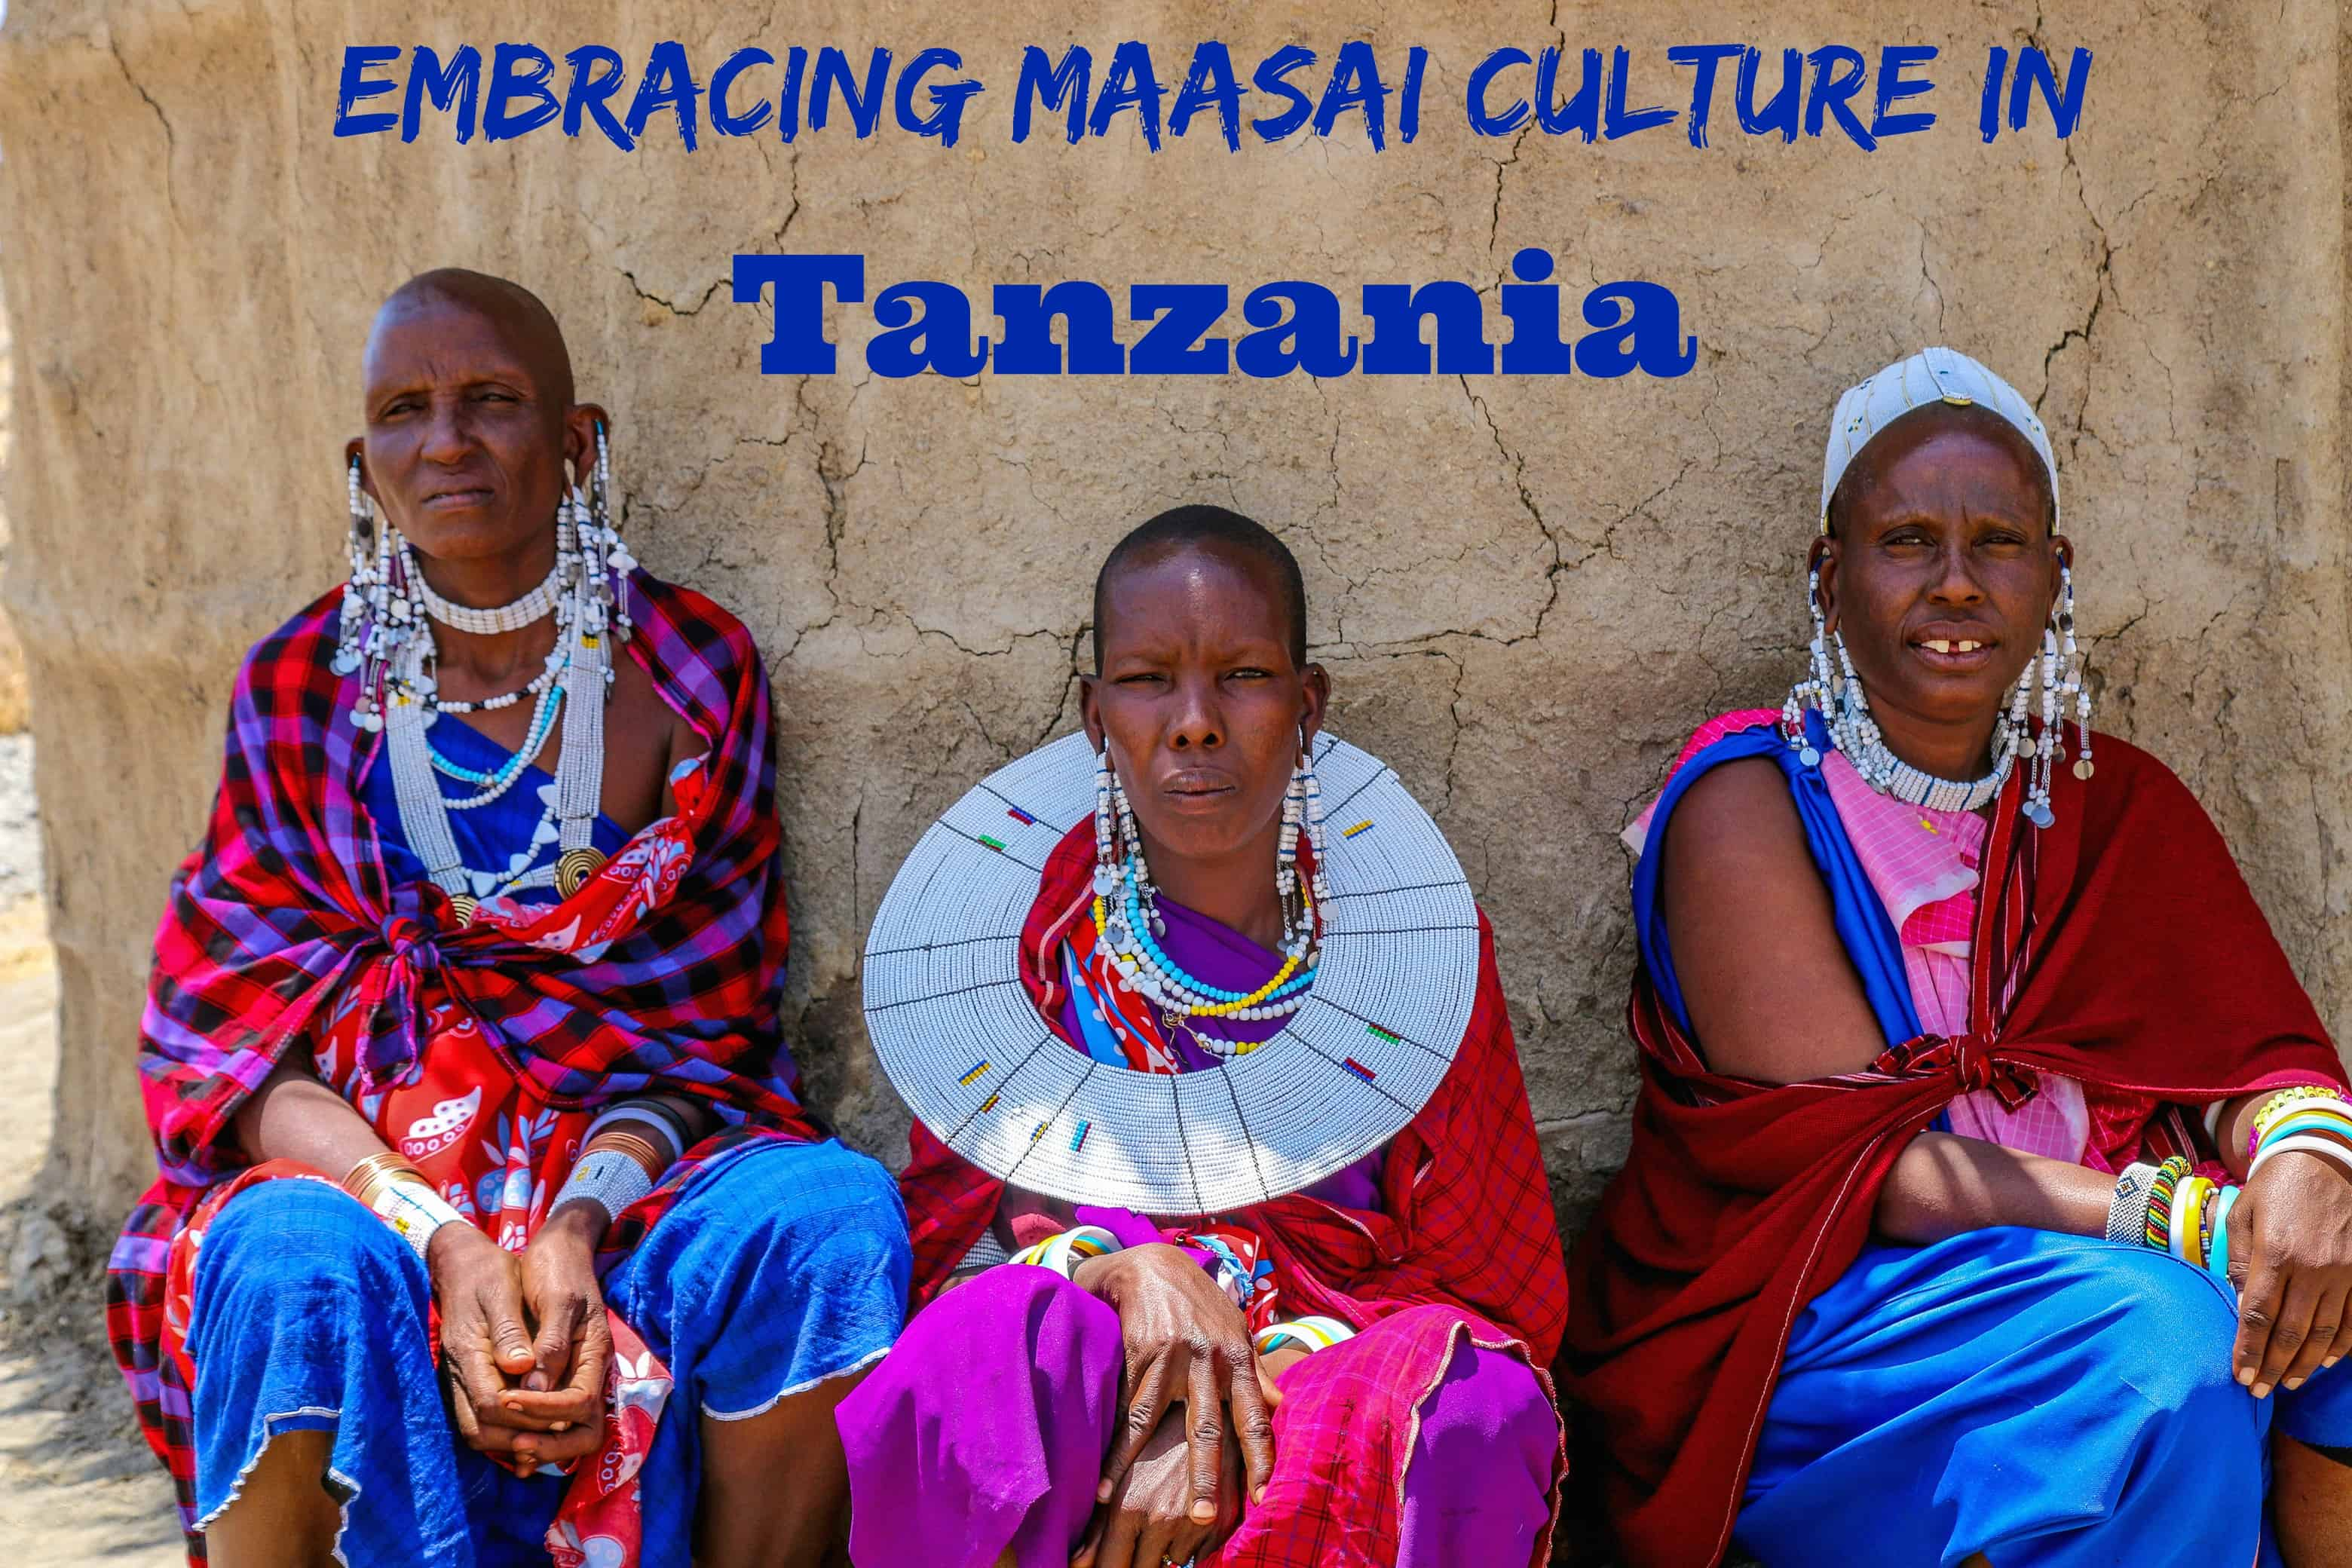 Embracing Maasai Culture in Tanzania